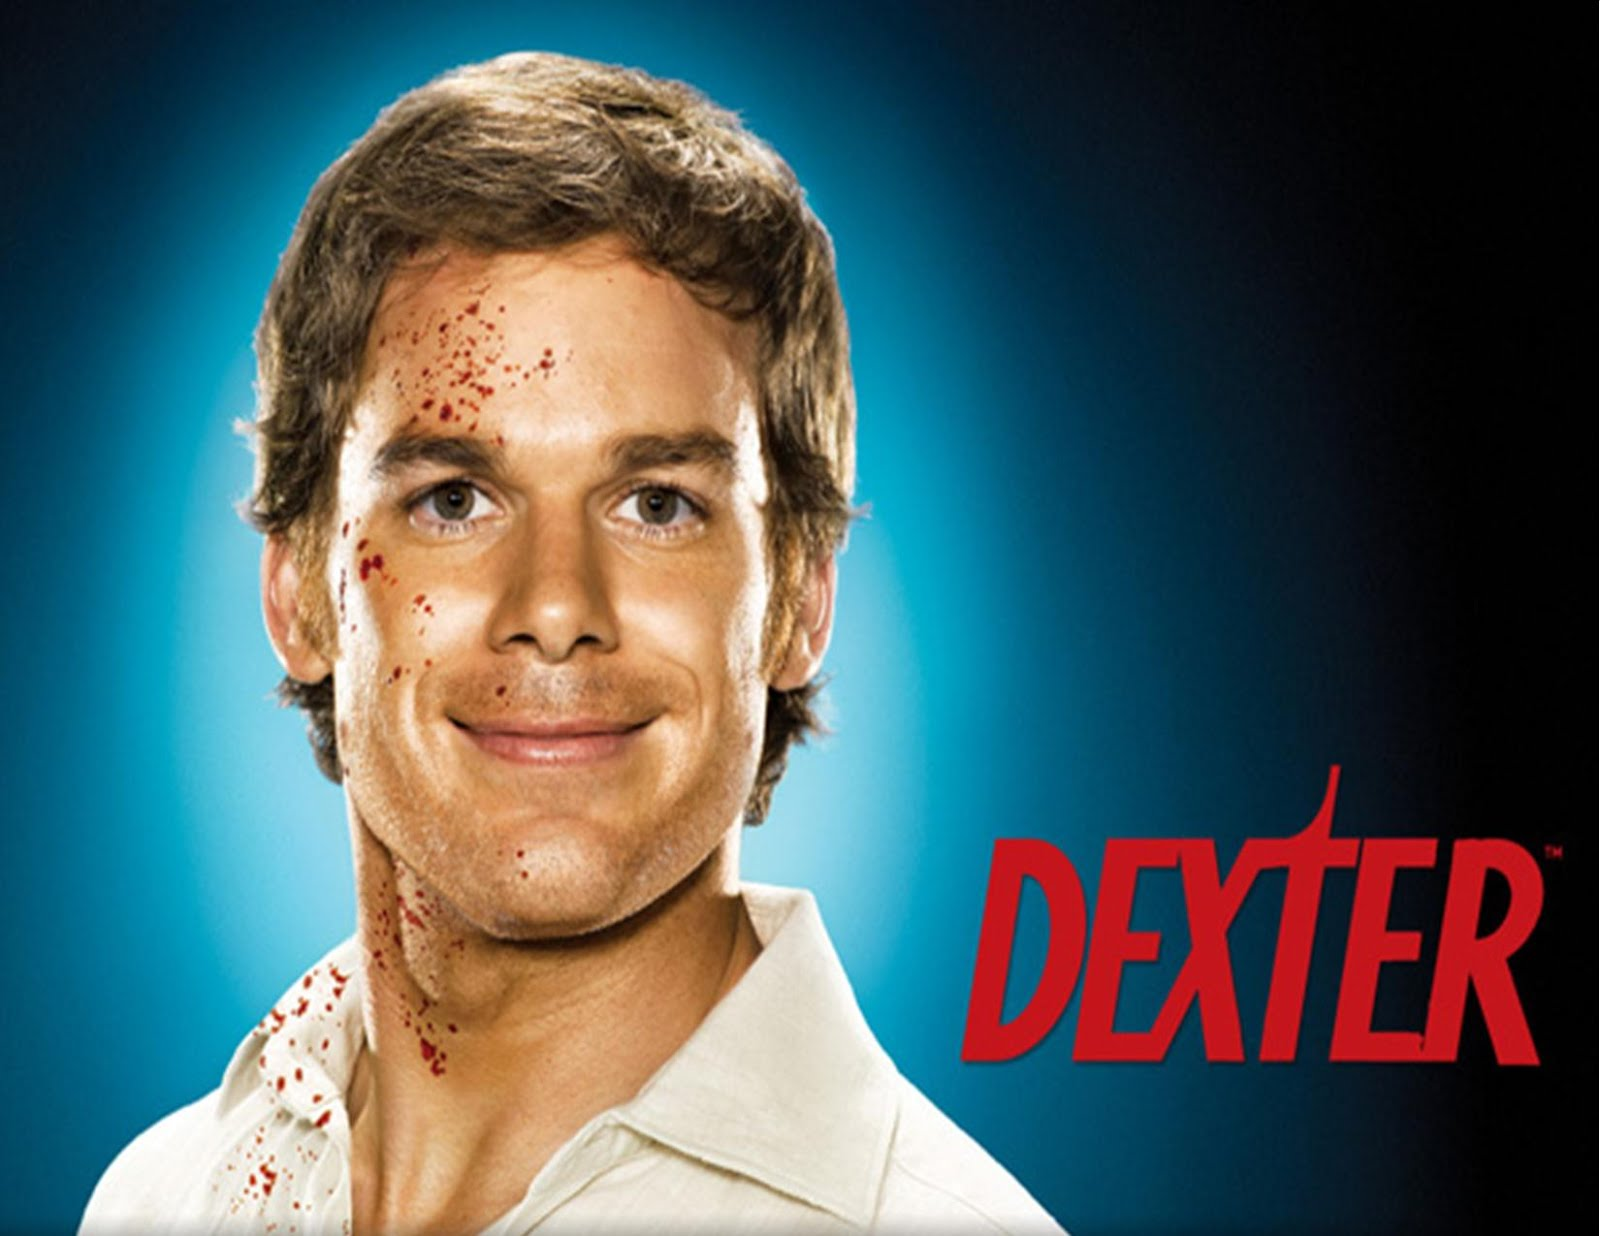 Watch dexter season 8 episode 5 online free / The young